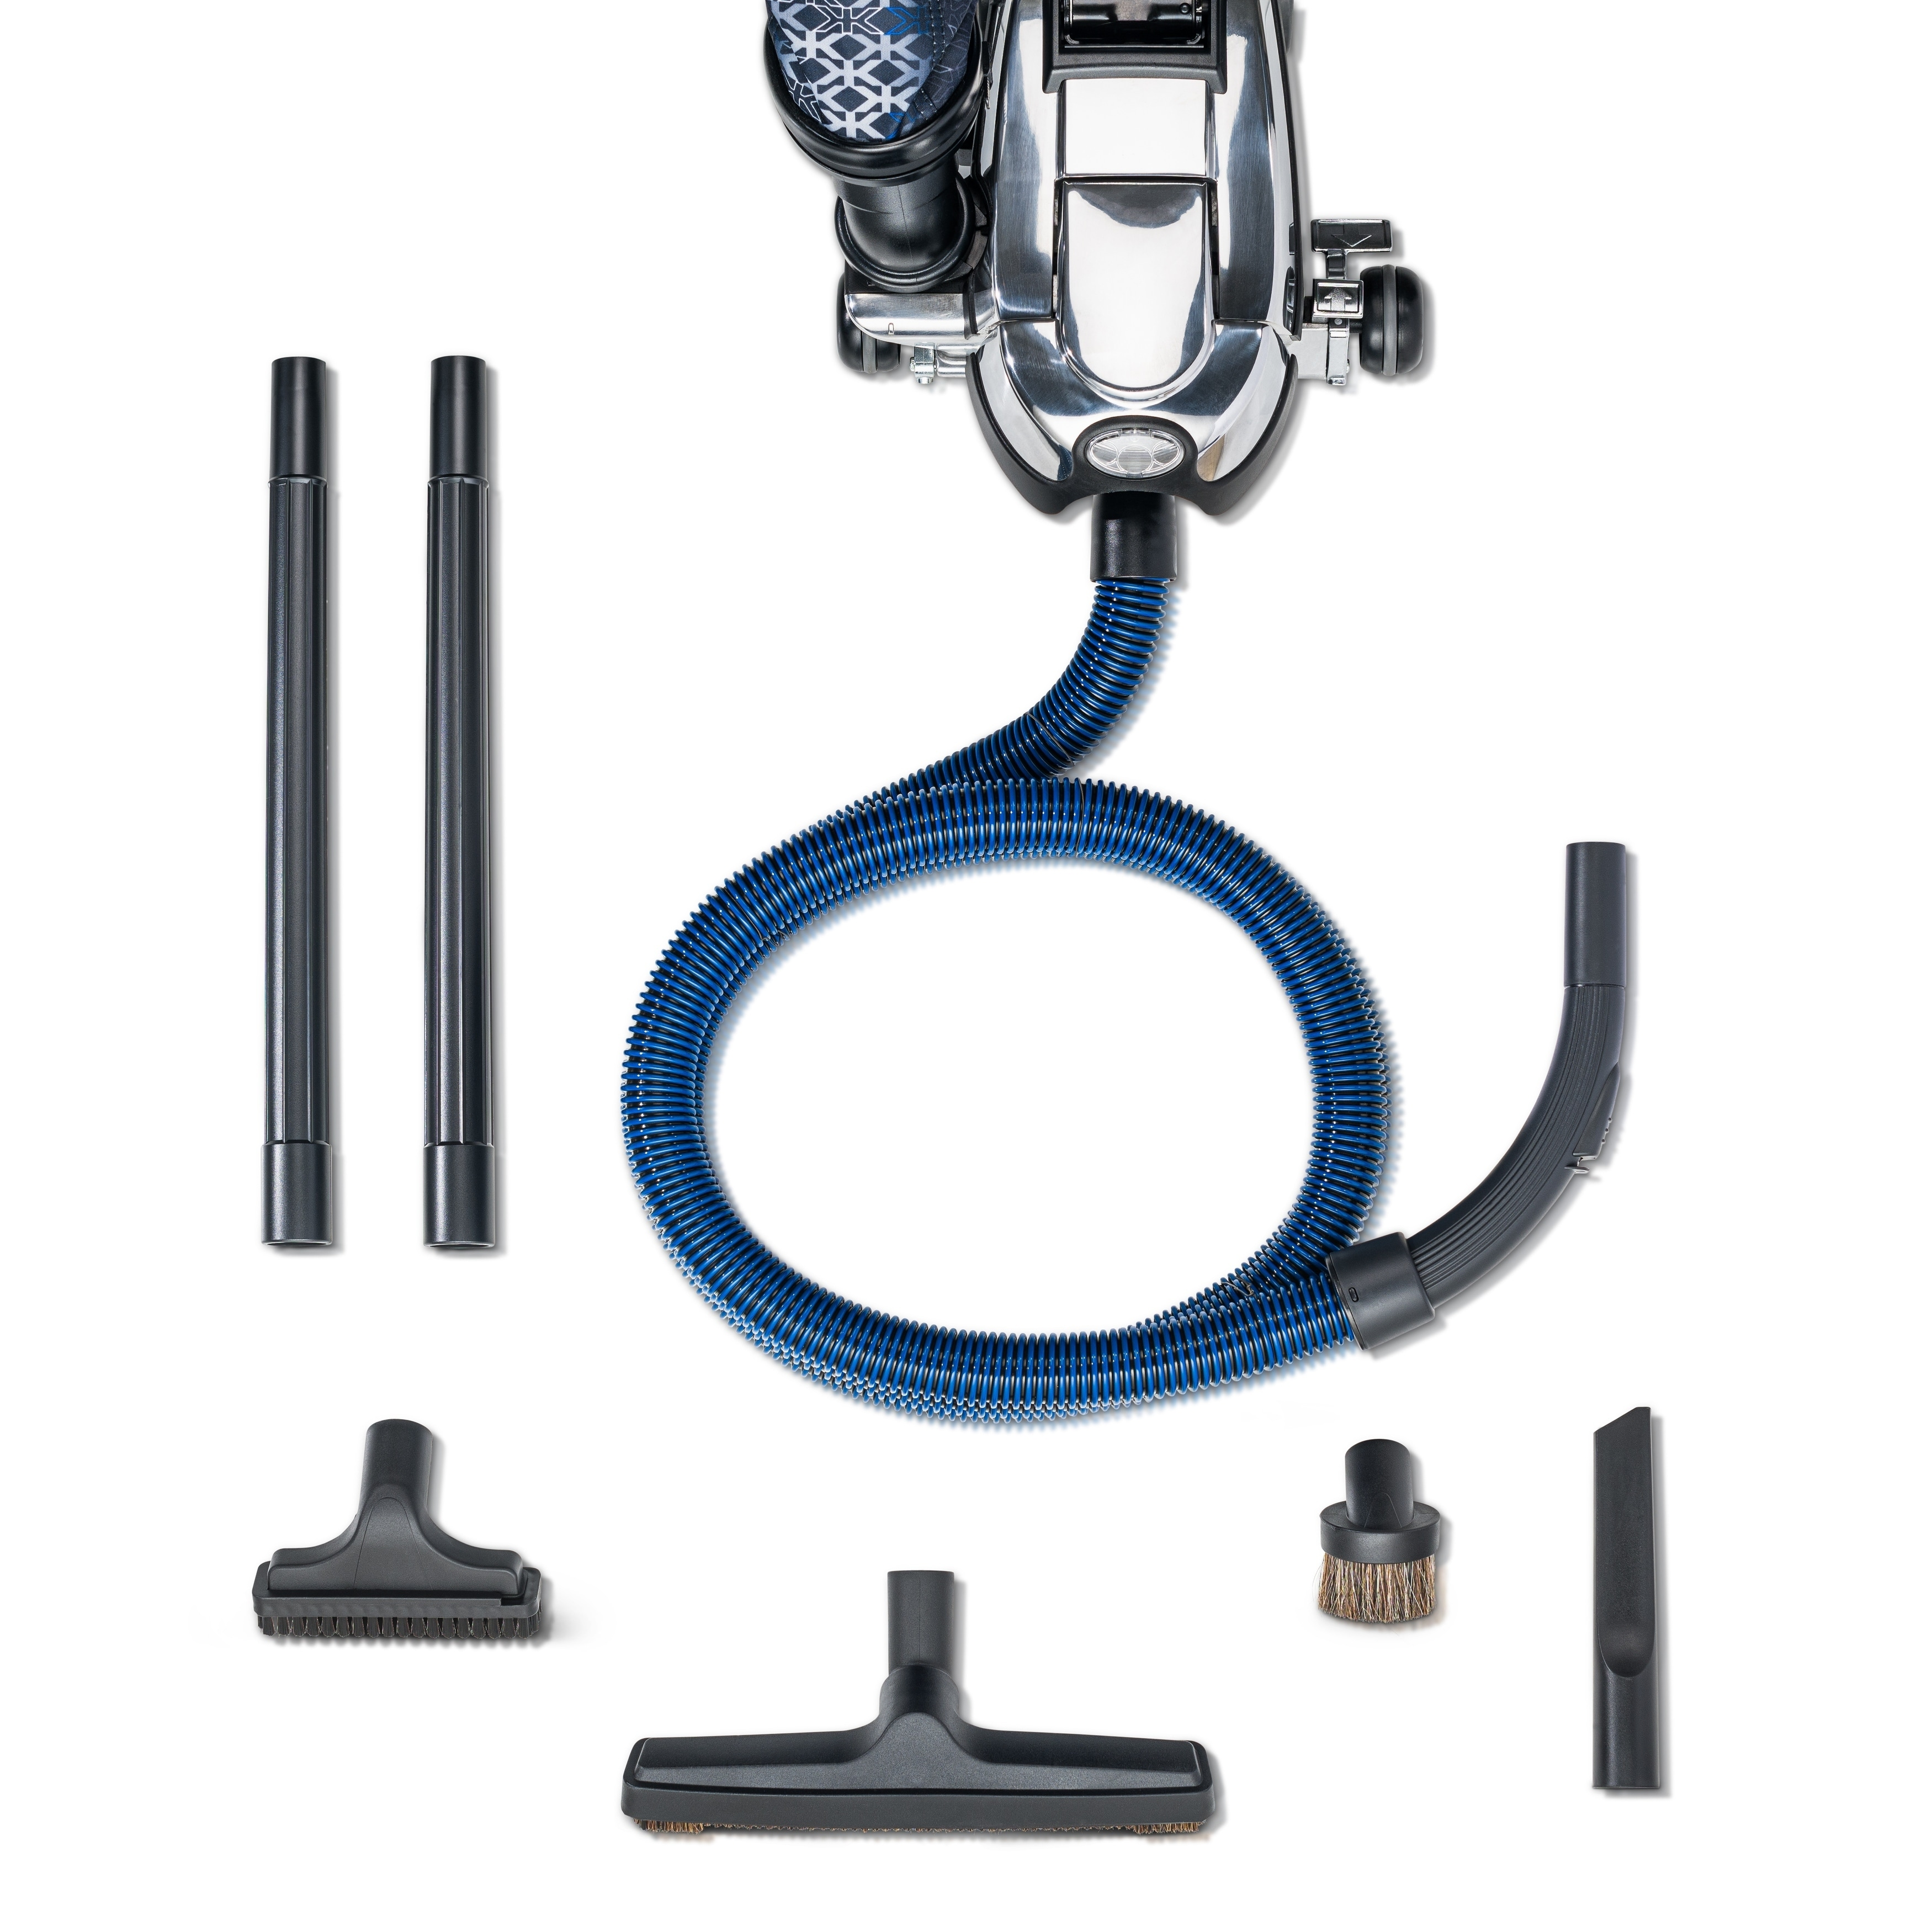 GV New Kirby Black Vacuum Attachments Tool Set hose for G...